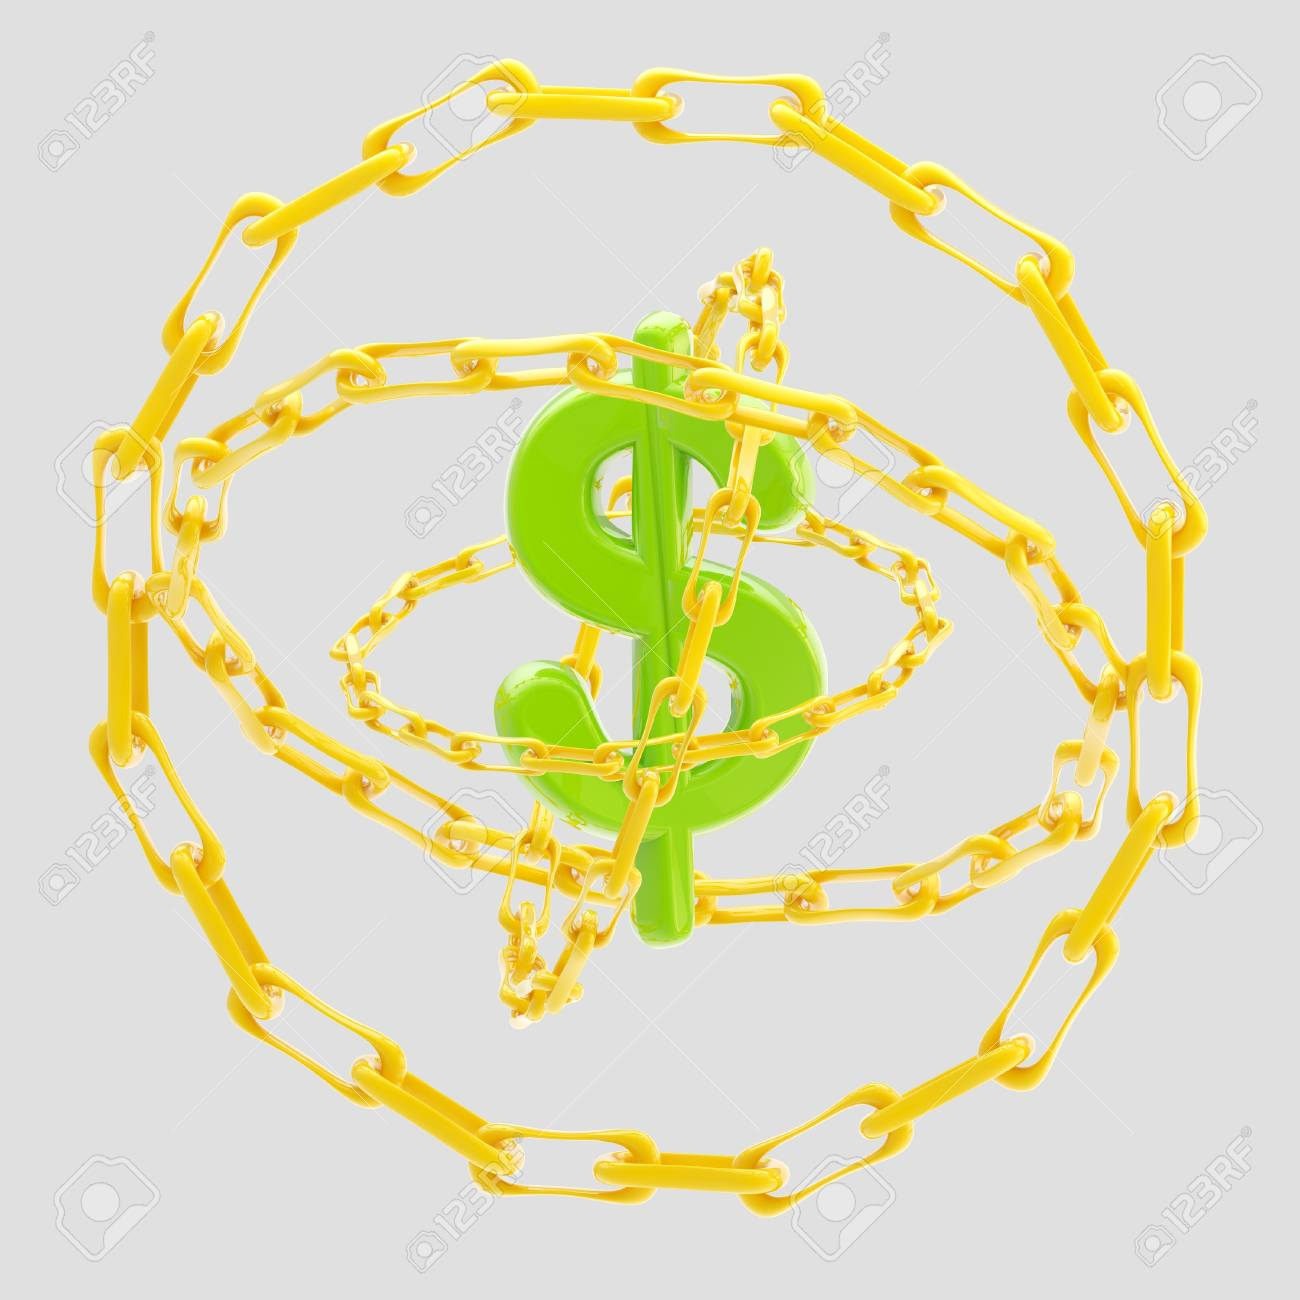 Dollar sign encircled with golden chains isolated Stock Photo - 13145313